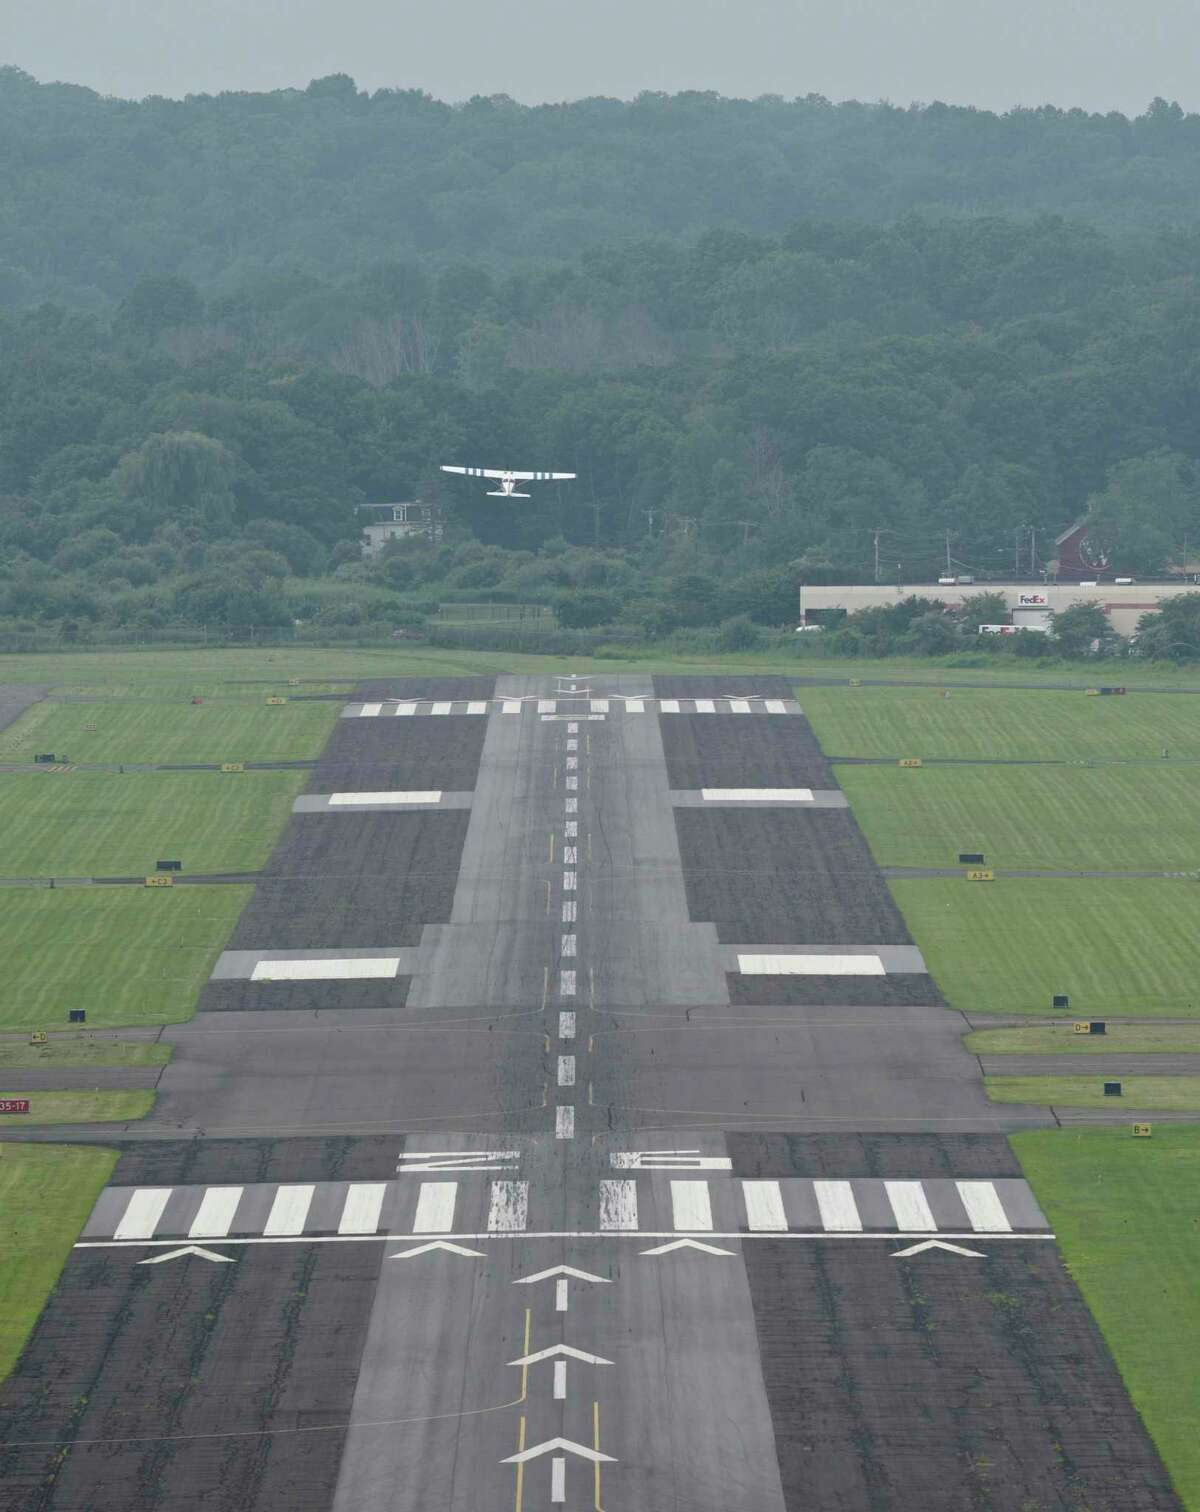 An airplane takes off from Danbury Municipal Airport into hazy skies on July 21 in Danbury, .